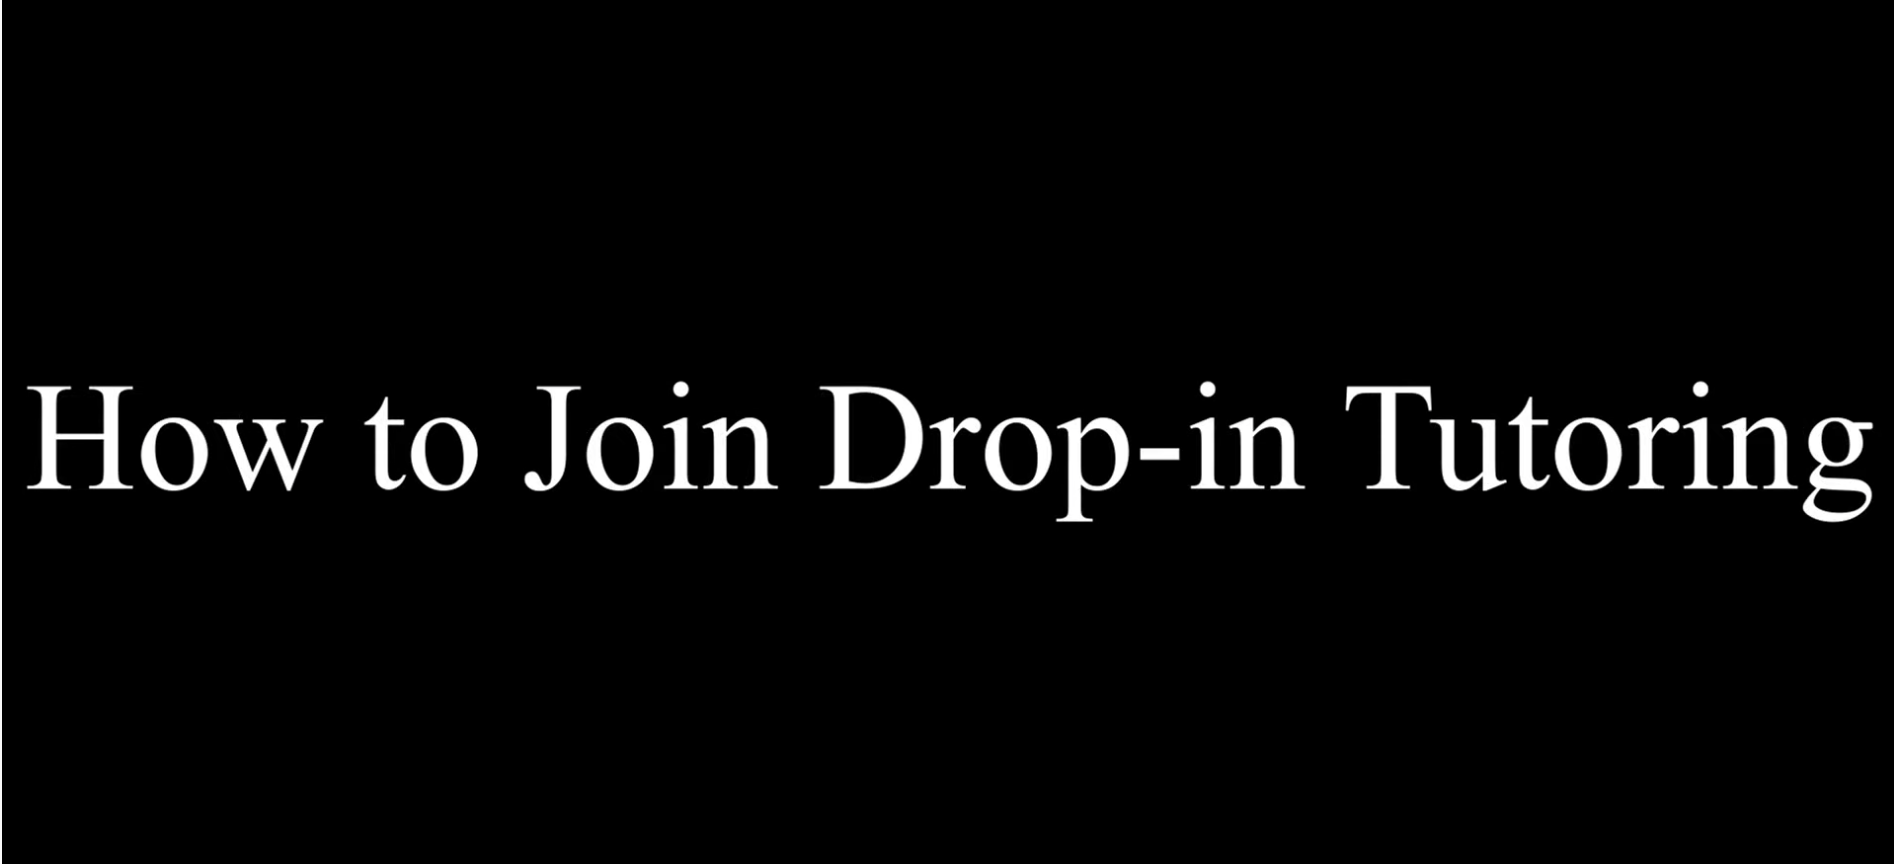 How to Join Drop-In Tutoring